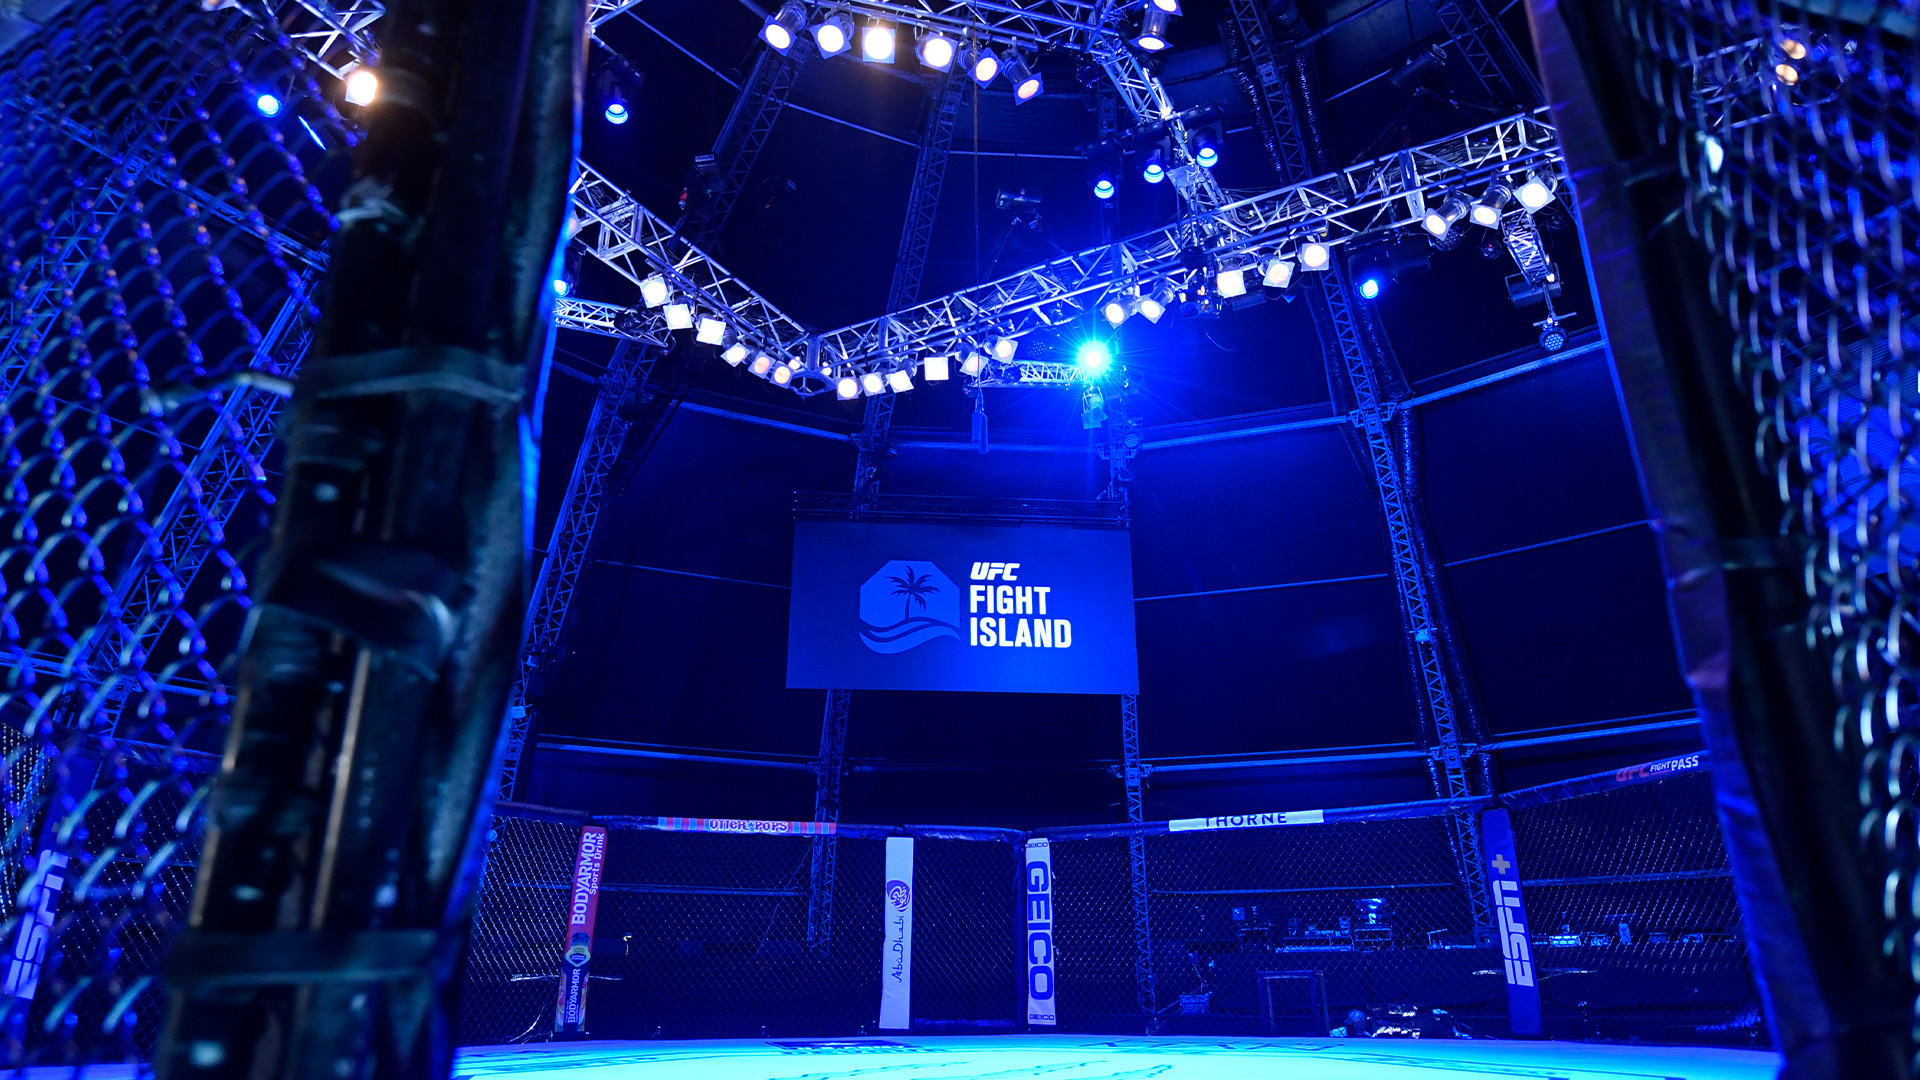 A general view of the Octagon prior to the UFC Fight Night event inside Flash Forum on UFC Fight Island on July 26, 2020 in Yas Island, Abu Dhabi, United Arab Emirates. (Photo by Jeff Bottari/Zuffa LLC)